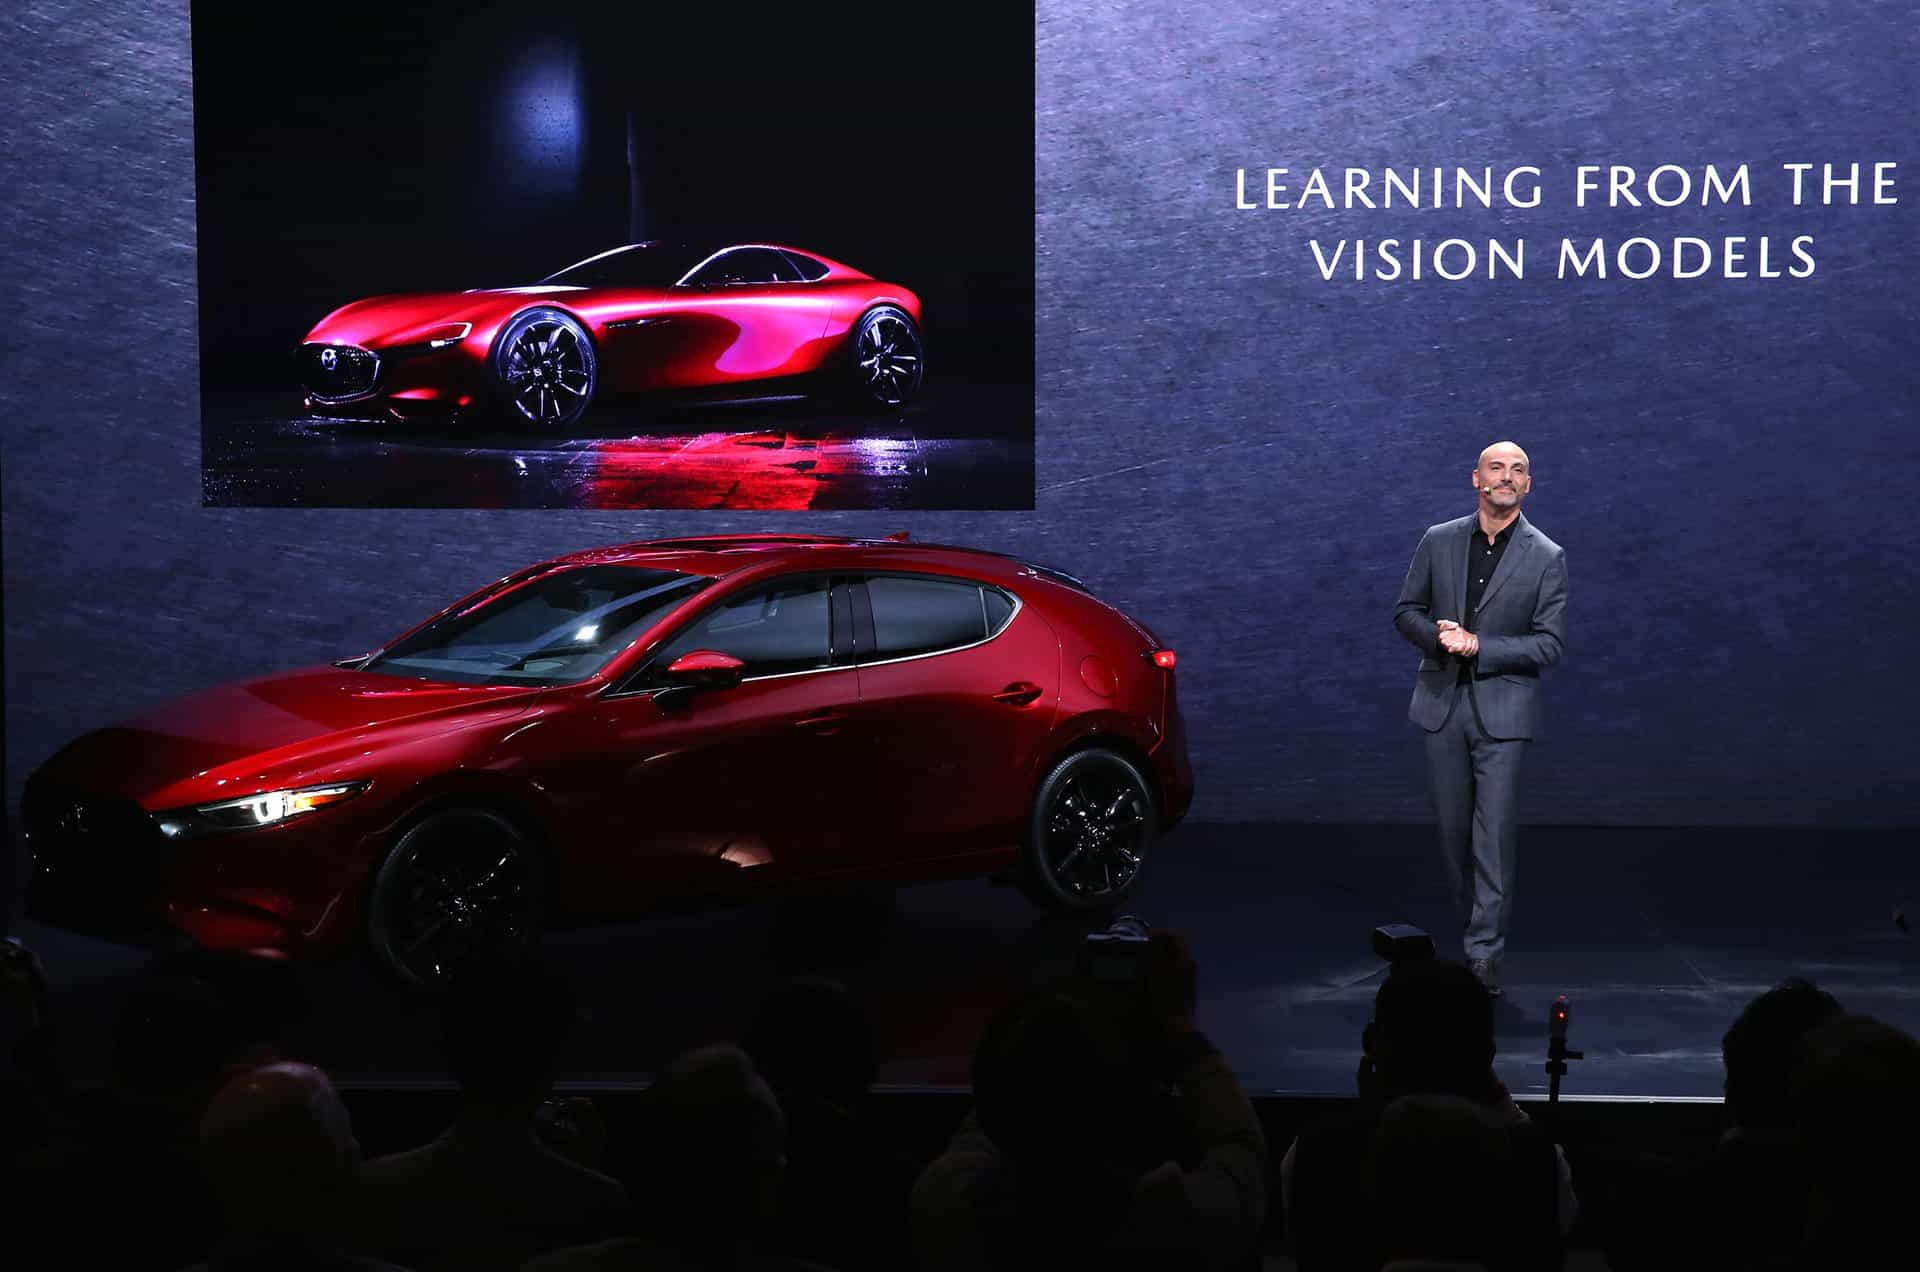 Julien Montousse (Design Director at Mazda North American Operations).